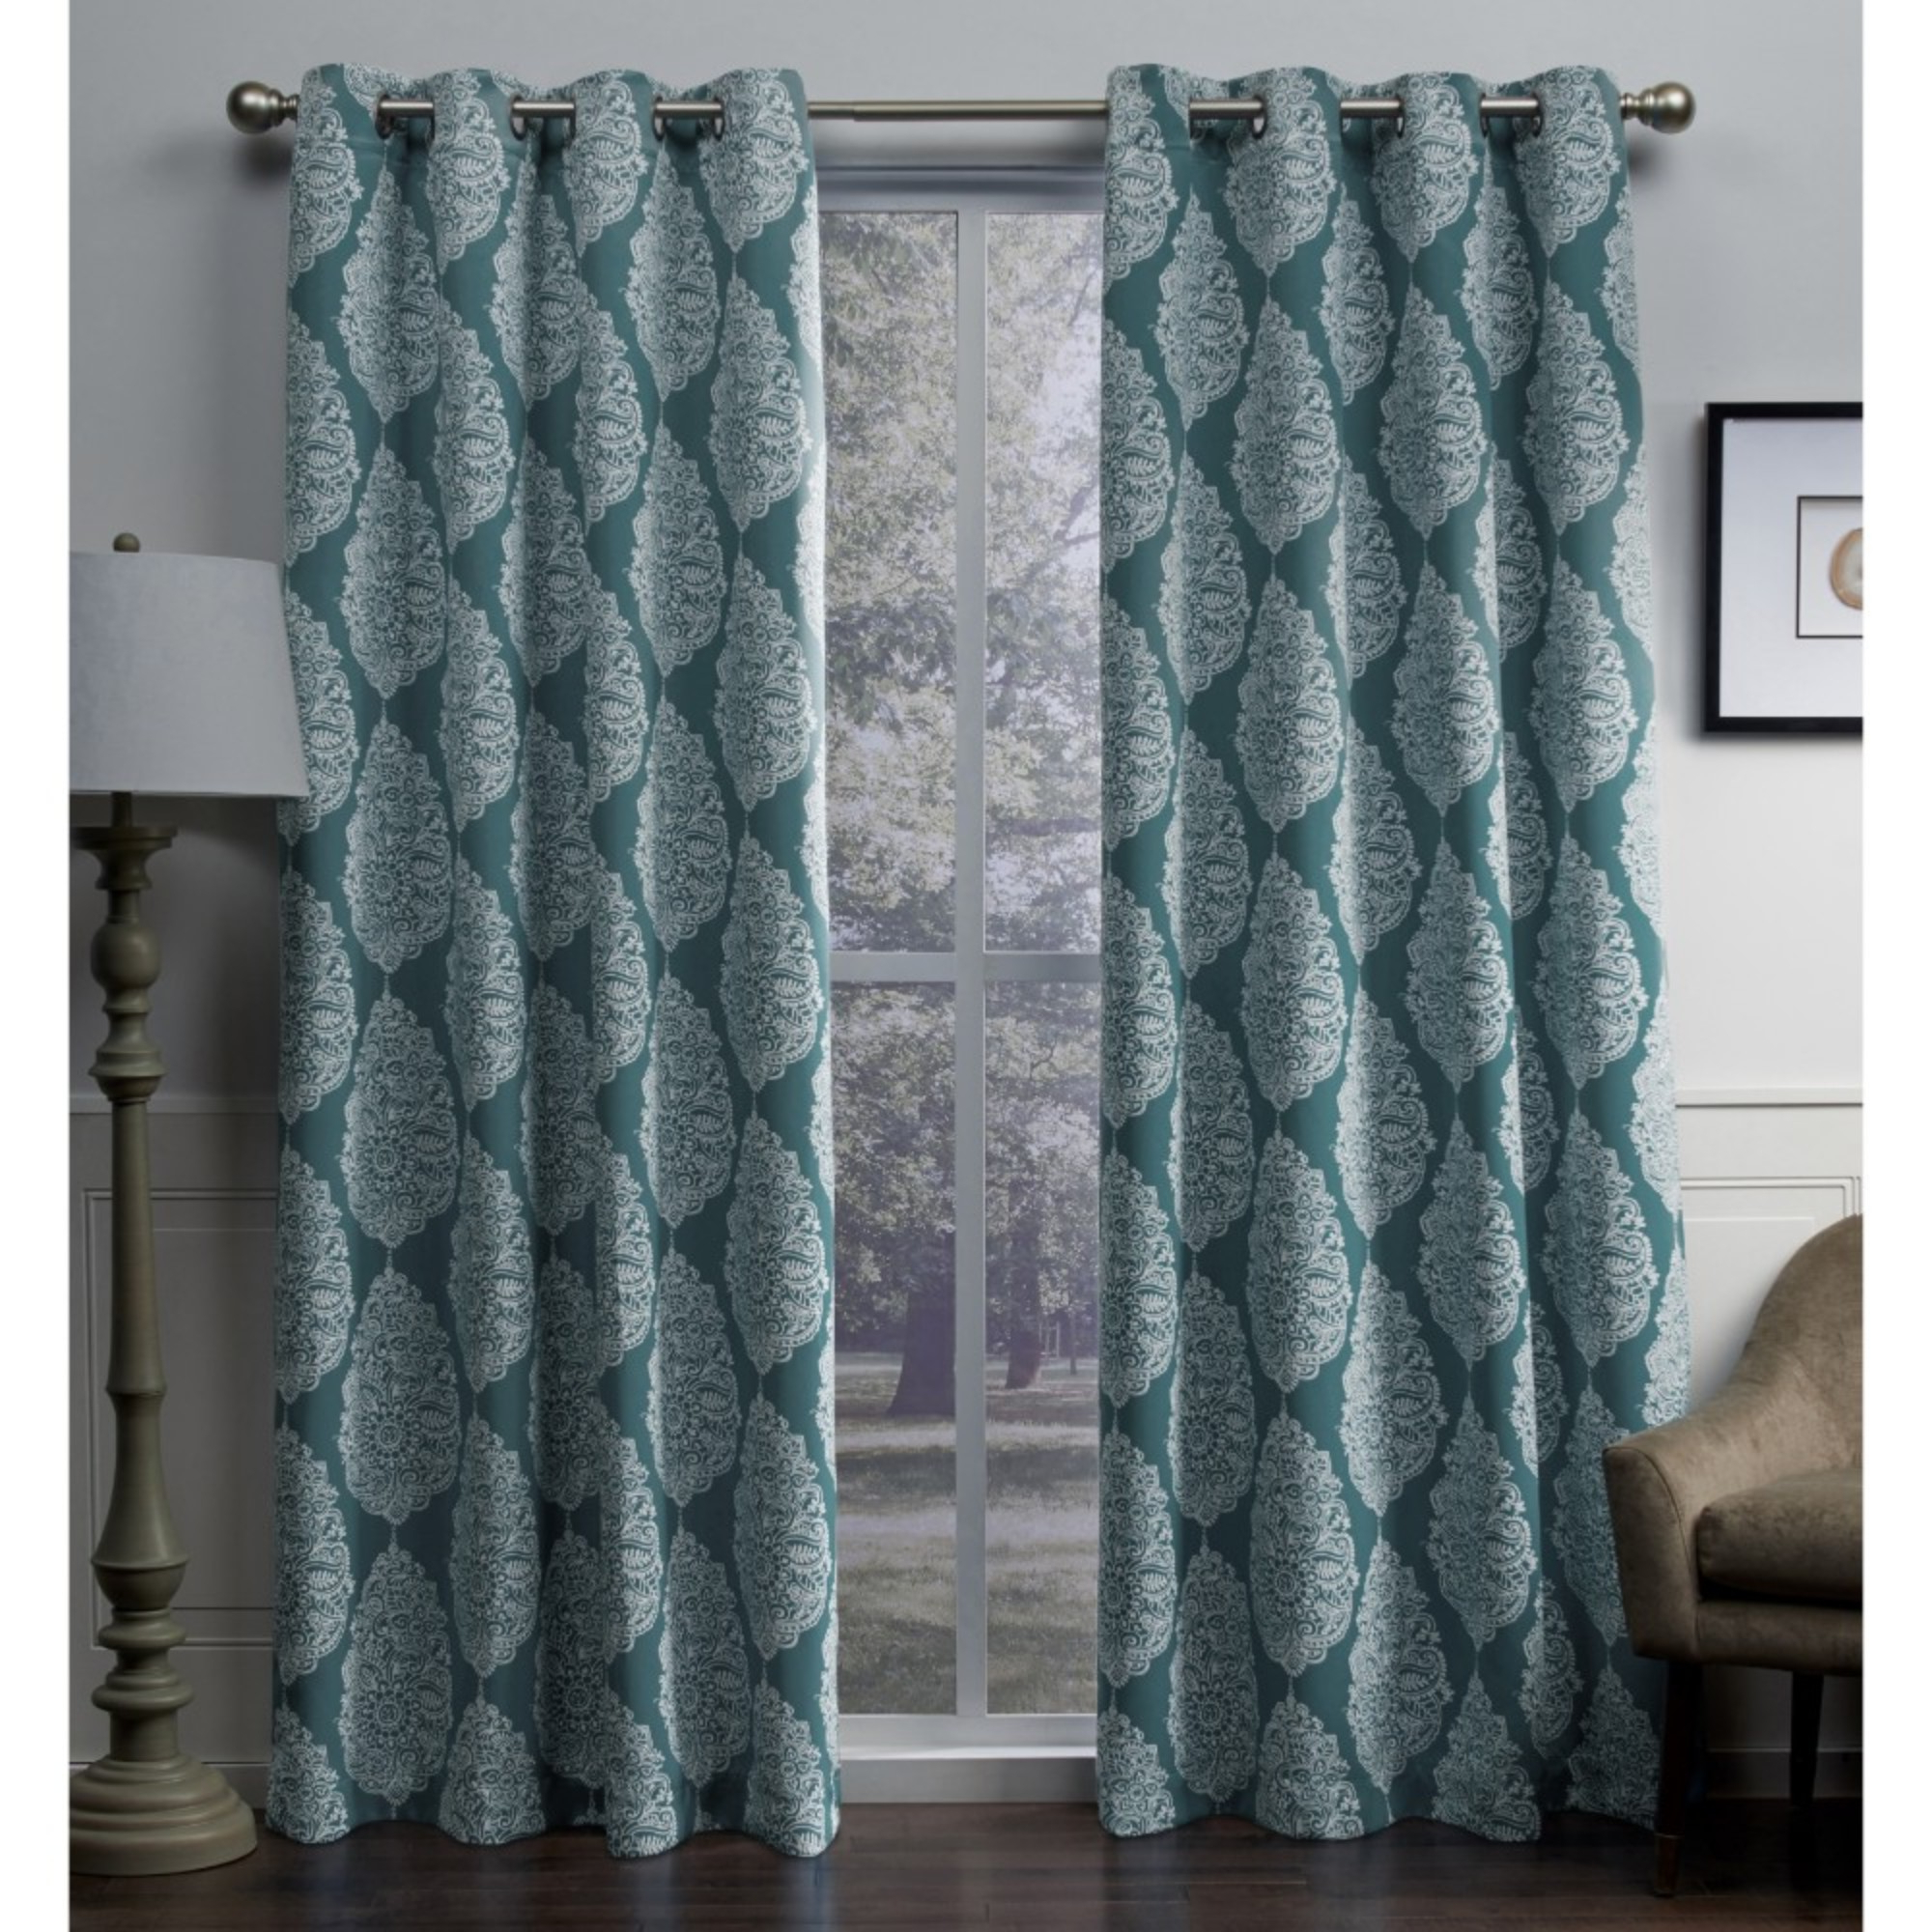 Best And Newest Sateen Twill Weave Insulated Blackout Window Curtain Panel Pairs In Exclusive Home Queensland Printed Medallion Woven Sateen Woven Window Curtain Panel Pair With Grommet Top (View 15 of 20)